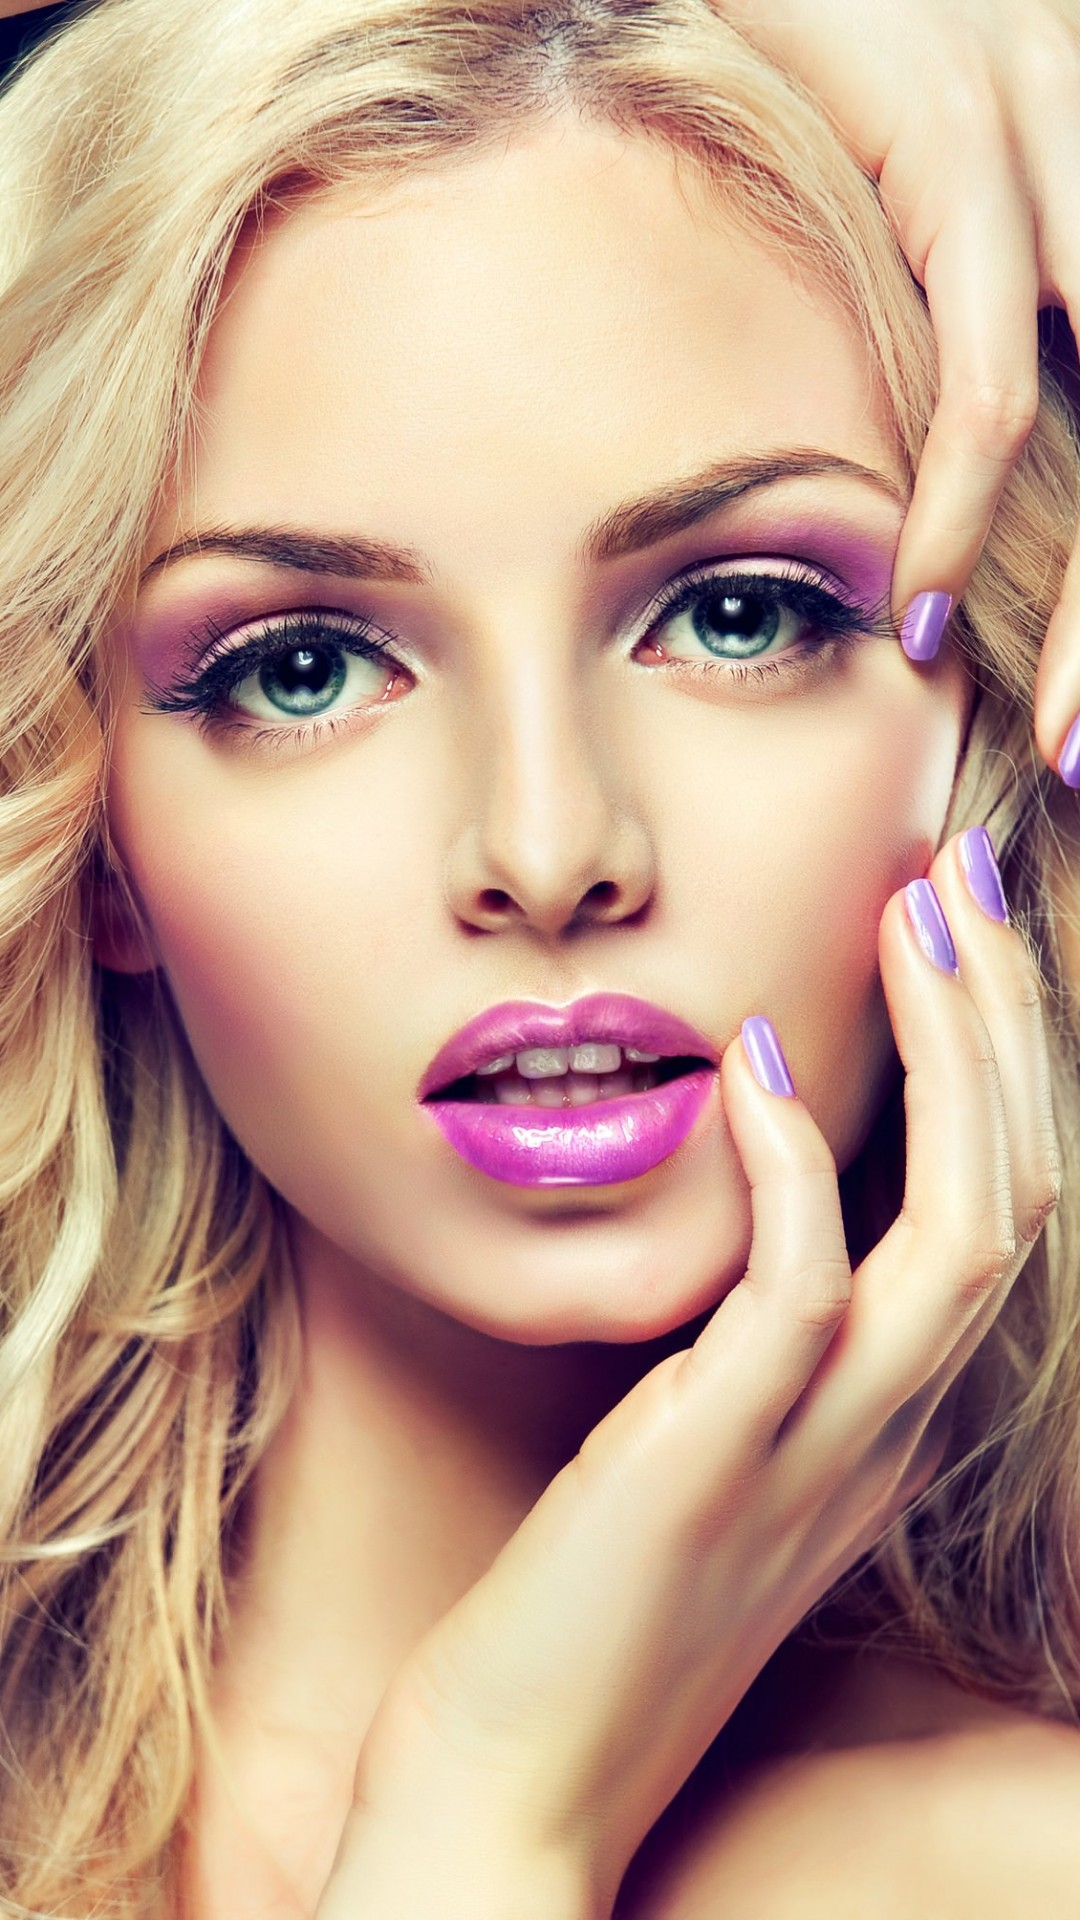 Beautiful Blonde Girl With Lilac Makeup Wallpaper for SAMSUNG Galaxy Note 3